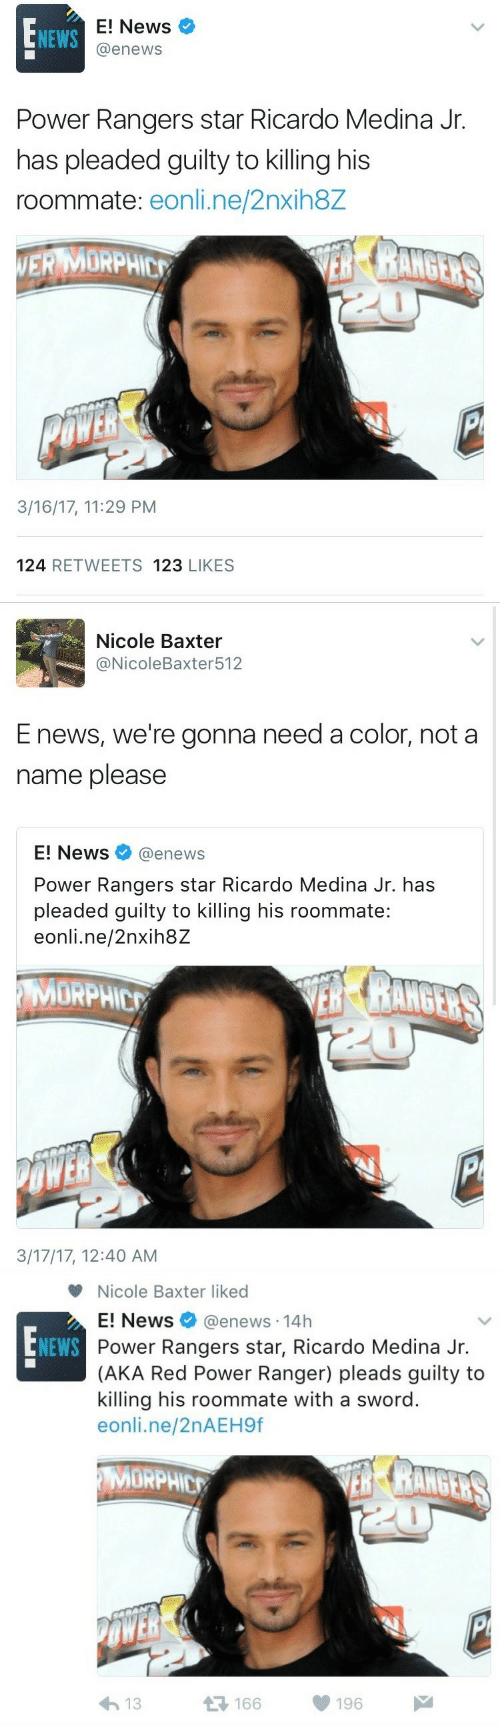 ranger: E! News  @enews  NEWS  Power Rangers star Ricardo Medina Jr.  has pleaded guilty to killing his  roommate: eonli.ne/2nxih8Z  ERMORPHE  3/16/17, 11:29 PM  124 RETWEETS 123 LIKES   Nicole Baxter  @NicoleBaxter512  E news, we're gonna need a color, not a  name please  E! News@enews  Power Rangers star Ricardo Medina Jr. has  pleaded guilty to killing his roommate:  eonli.ne/2nxih8Z  MORPHIC  3/17/17, 12:40 AM   Nicole Baxter liked  E! News @enews. 14h  Power Rangers star, Ricardo Medina Jr.  (AKA Red Power Ranger) pleads guilty to  killing his roommate with a sword  eonli.ne/2nAEH9f  NEWS  MORPHIC  μέ  166  196  わ13